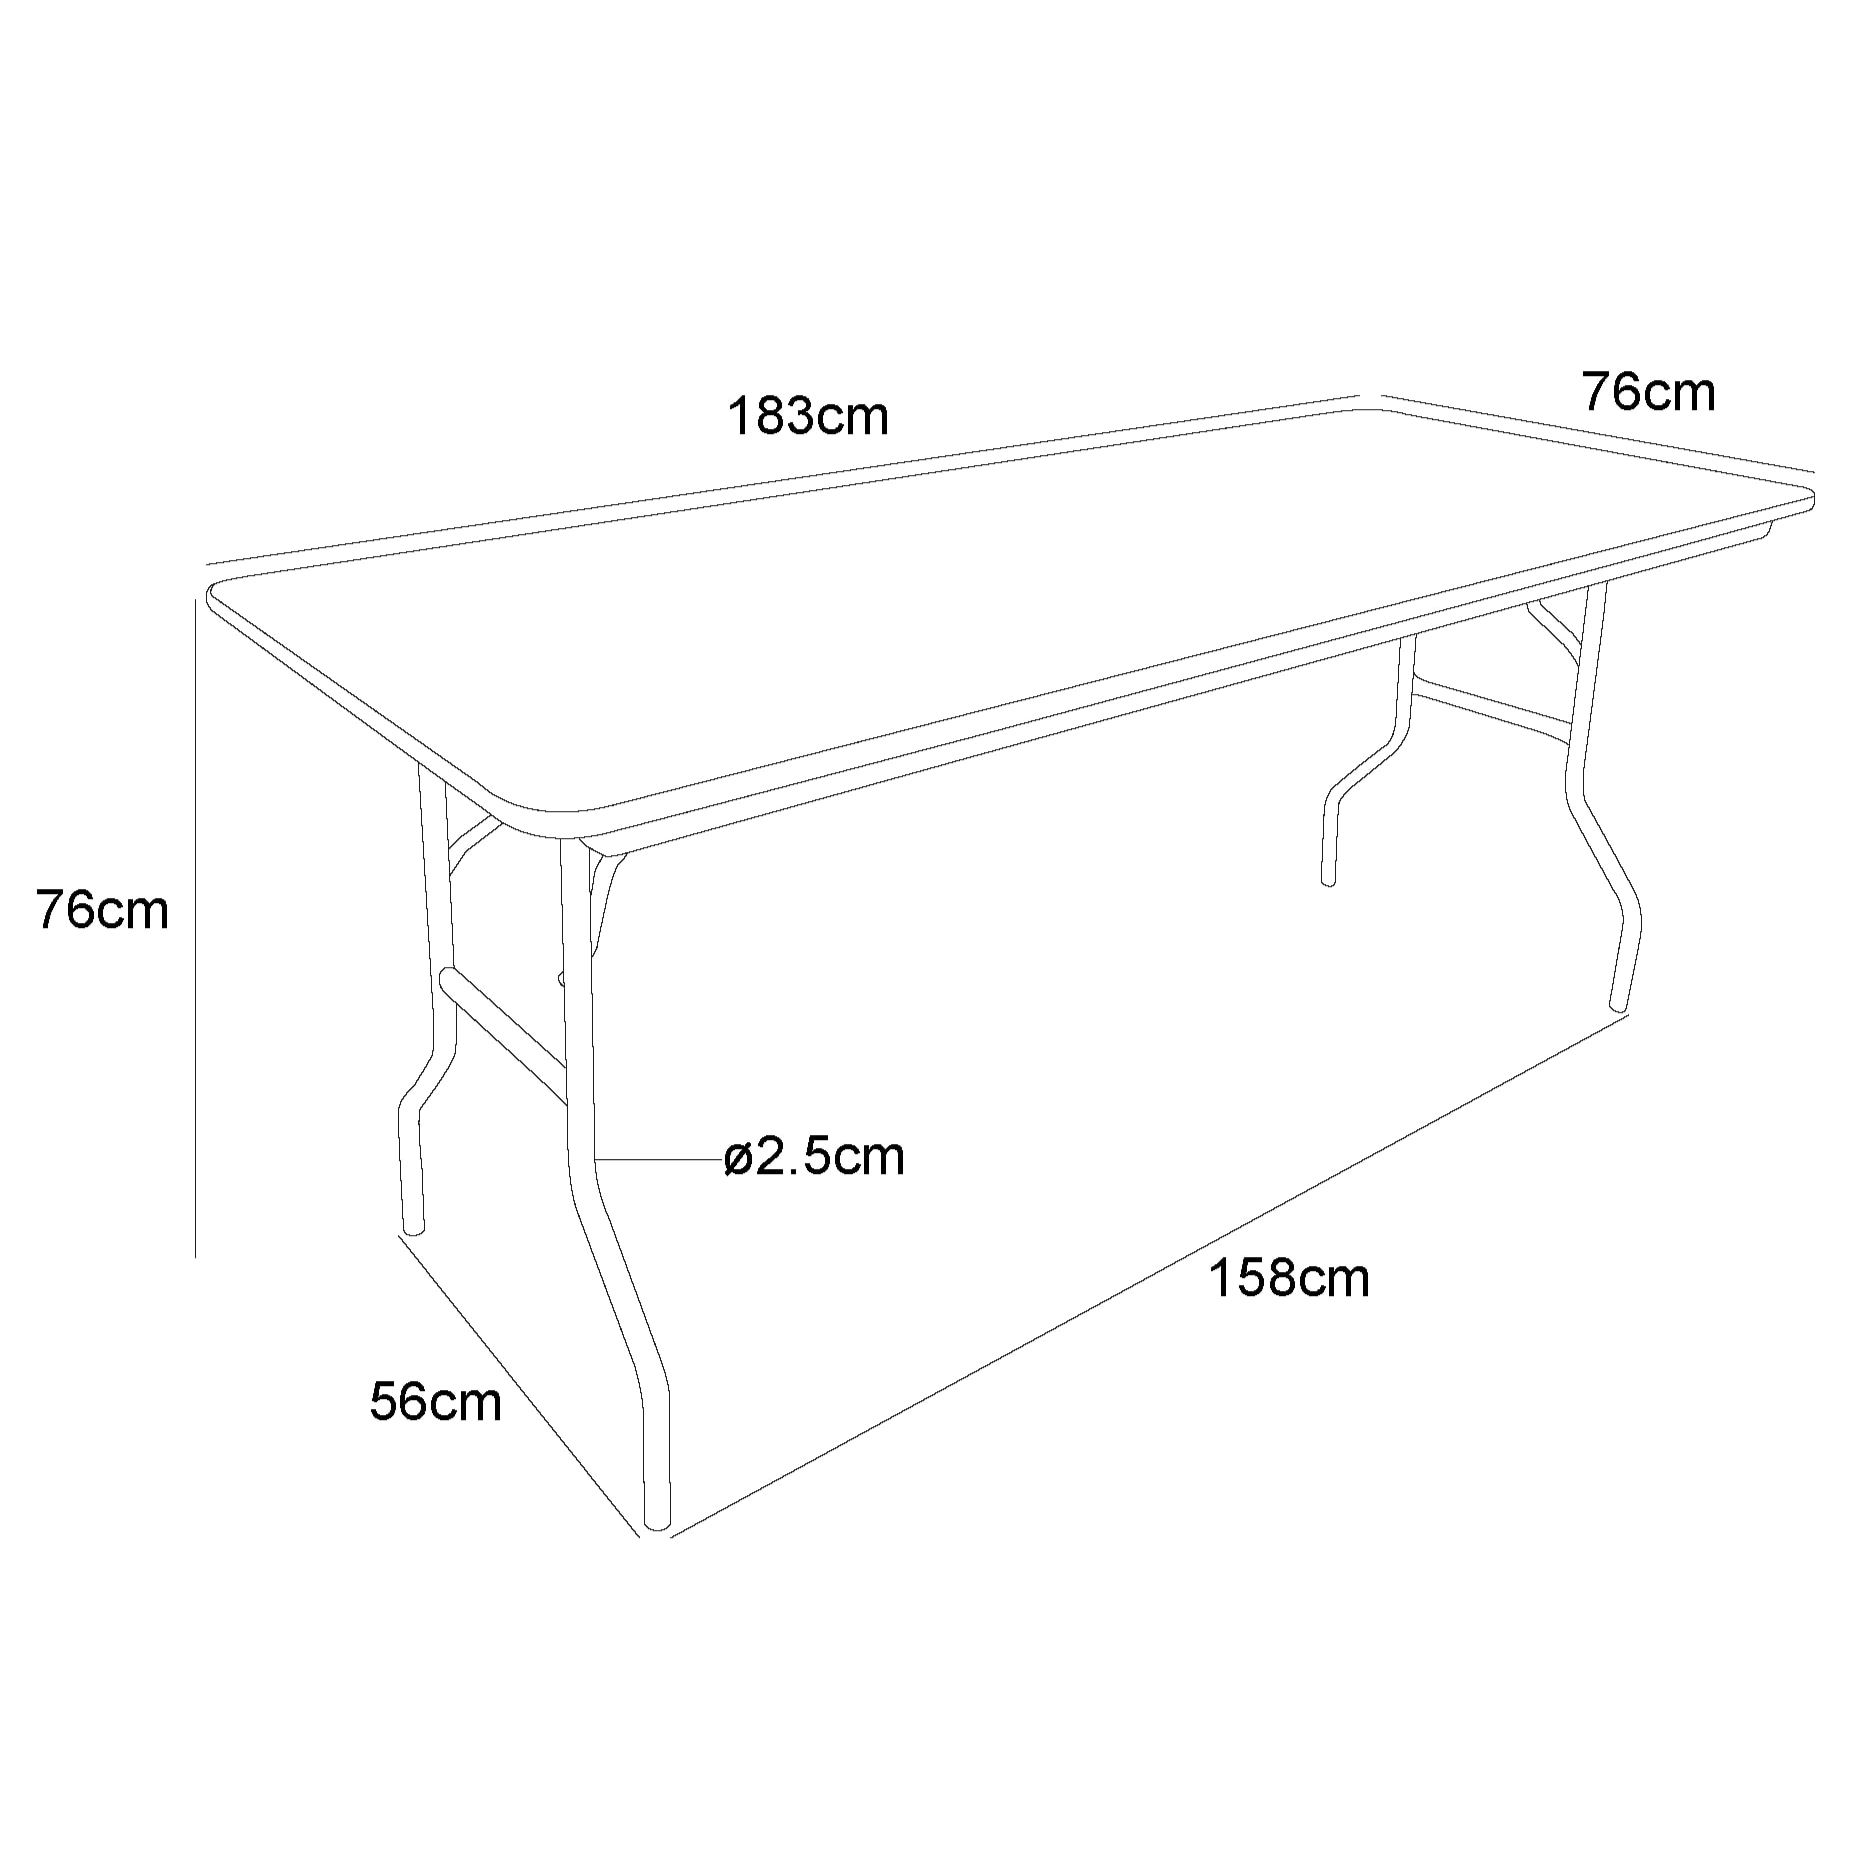 Table Pliante Multi Usage Table Pliante Rectangulaire Traiteur 183cm 8 Personnes Table